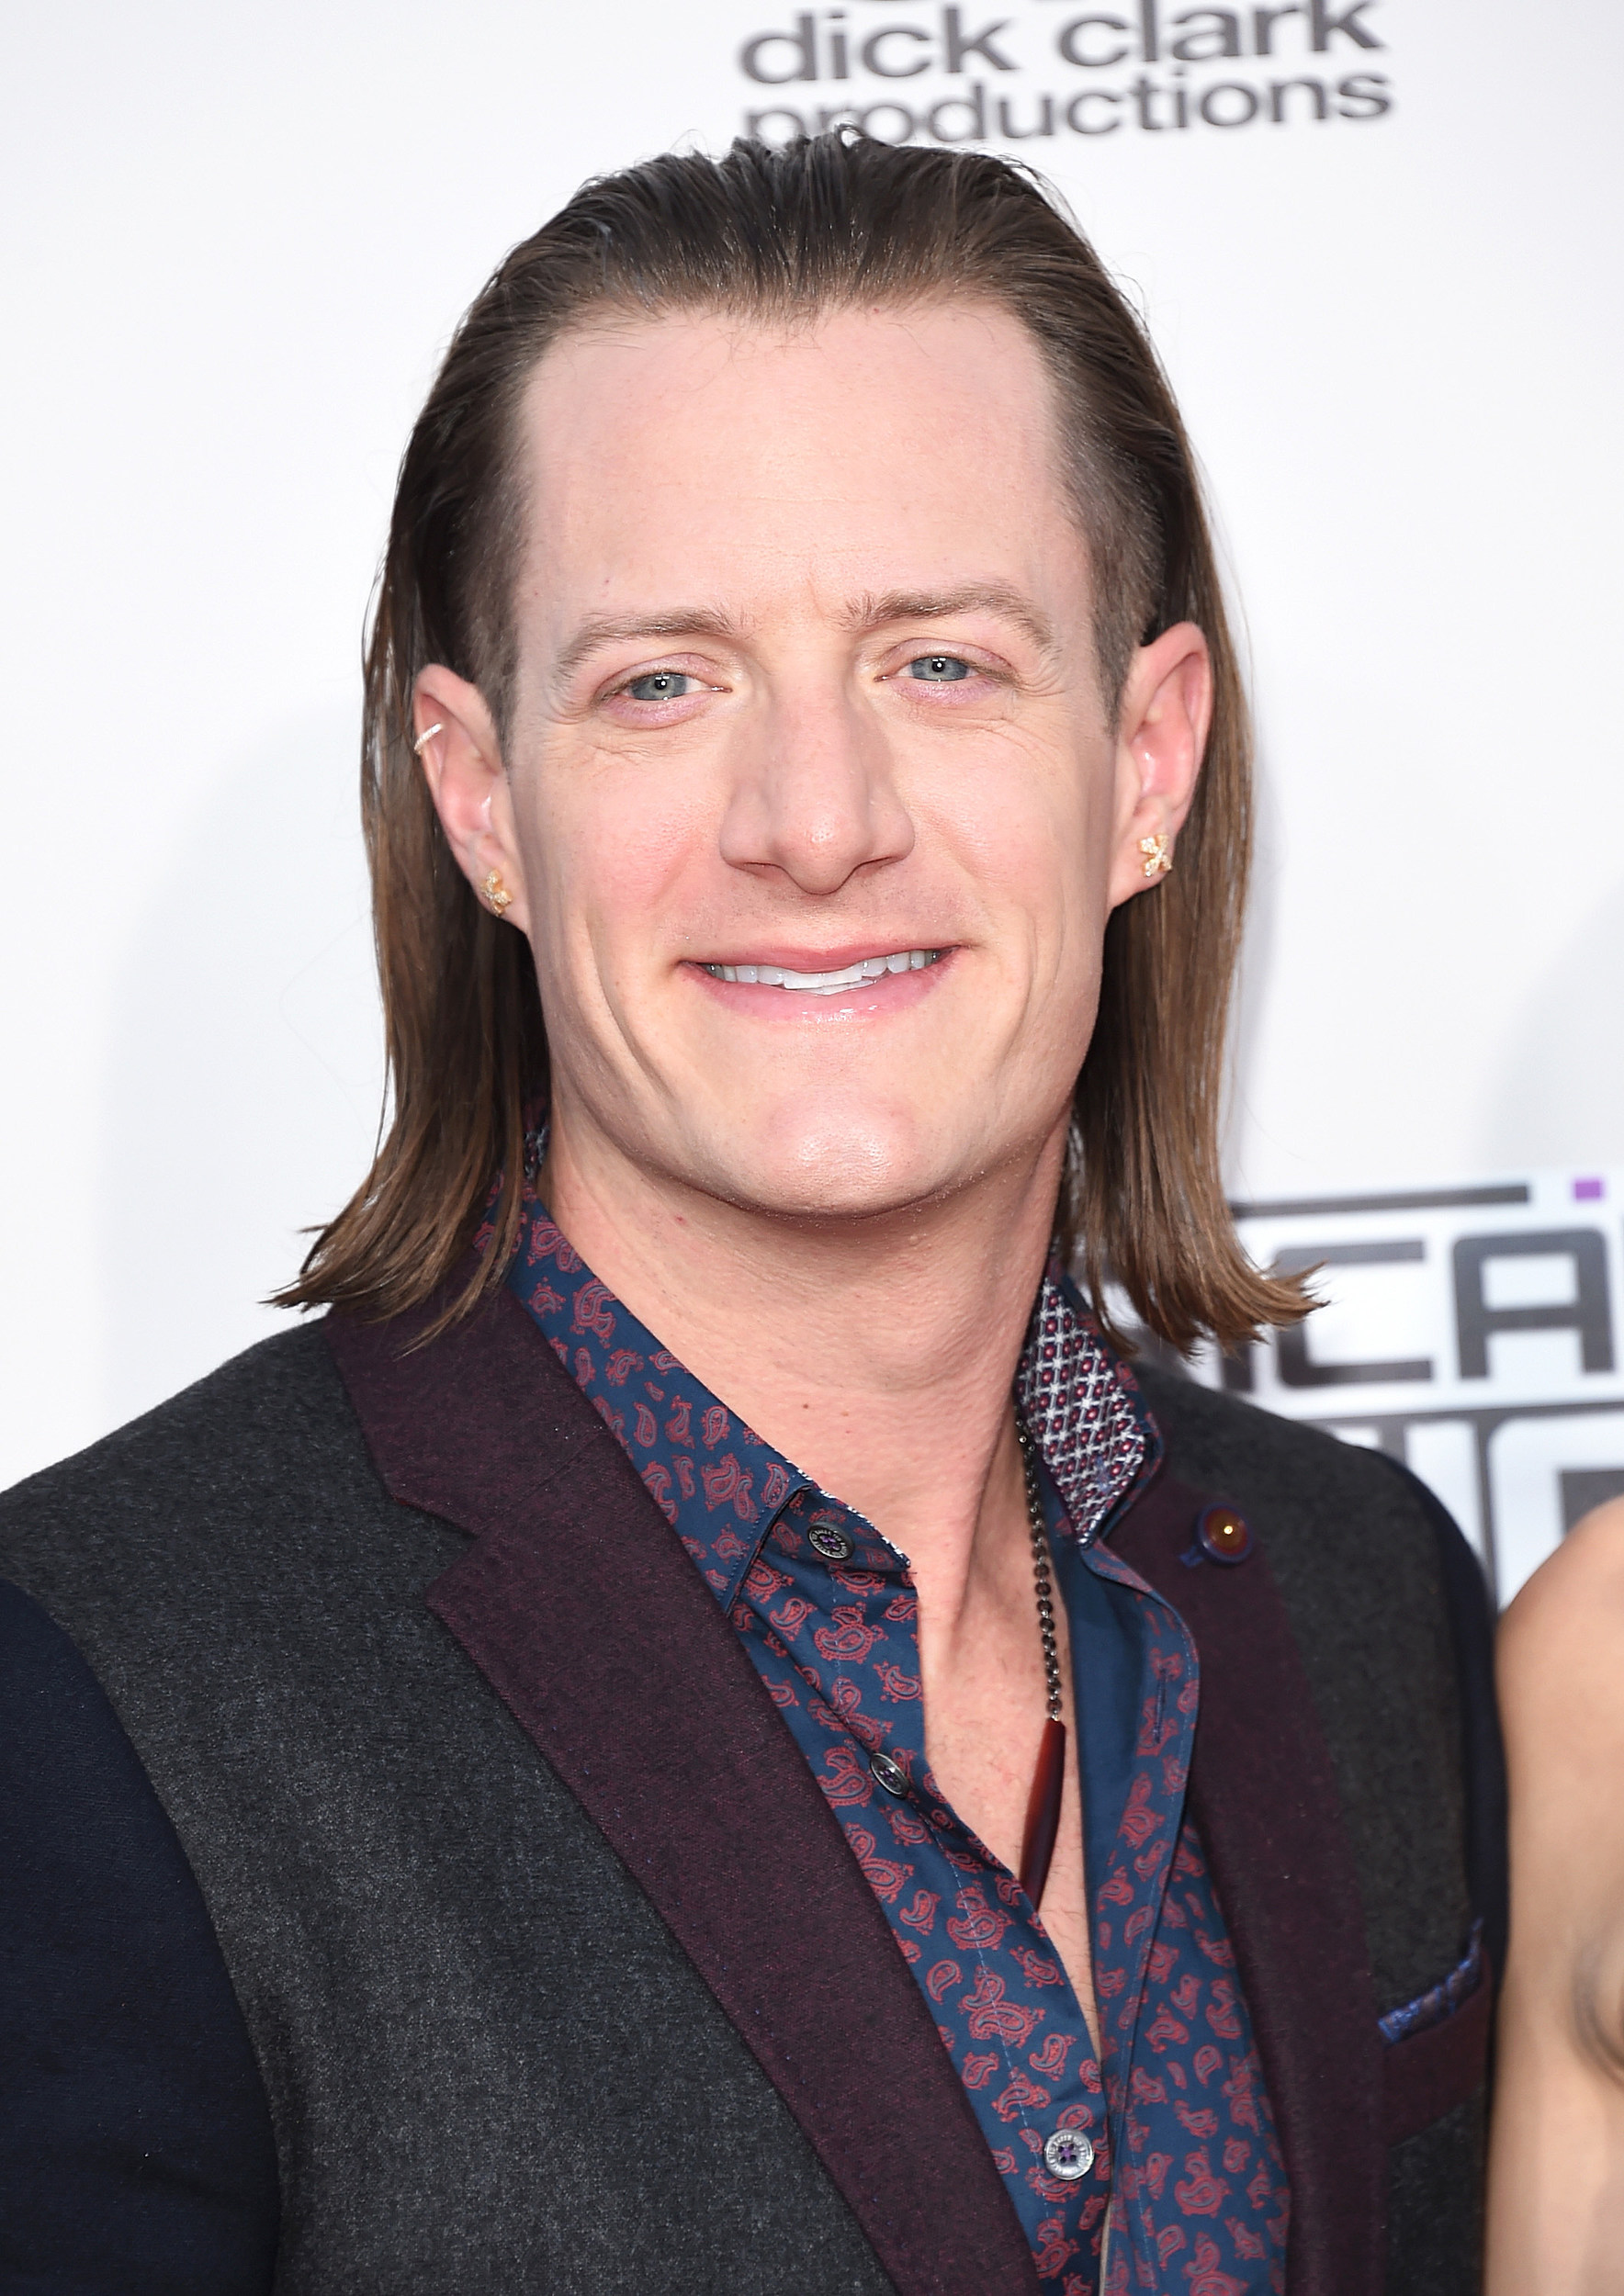 tyler hubbard haircut hubbard haircut haircuts models ideas 1000 | GettyImages 498327700